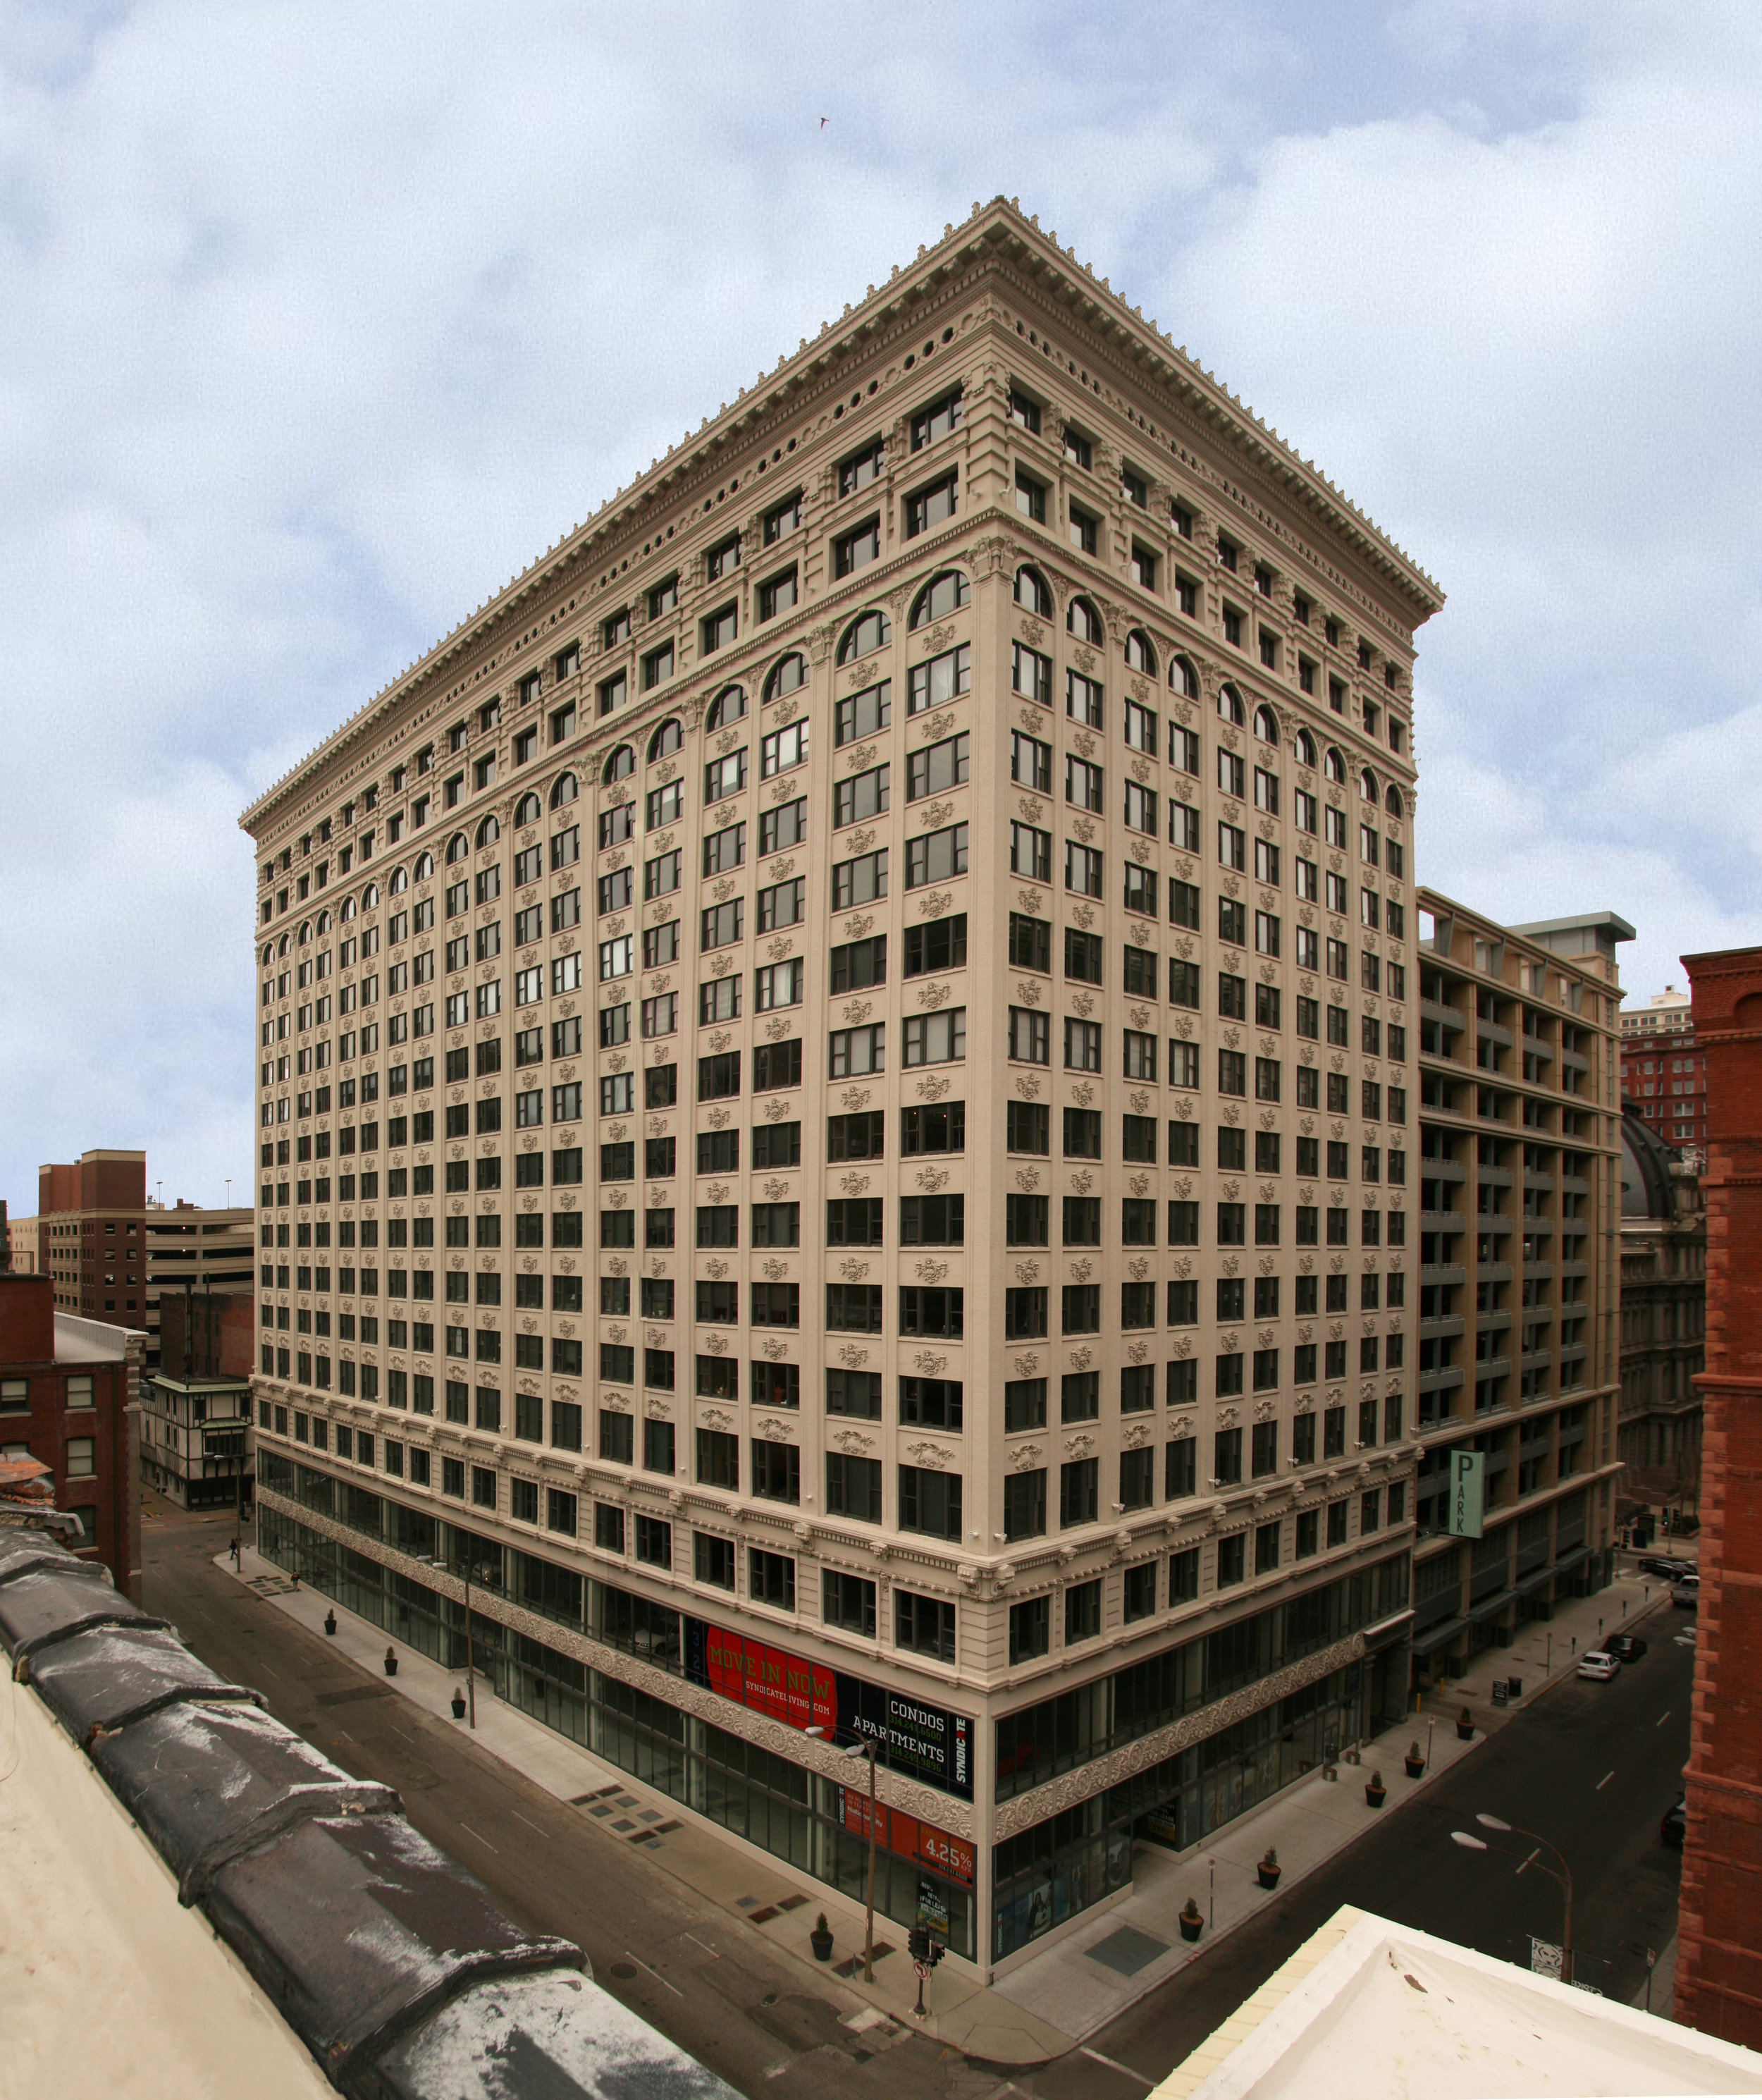 The Syndicate Building